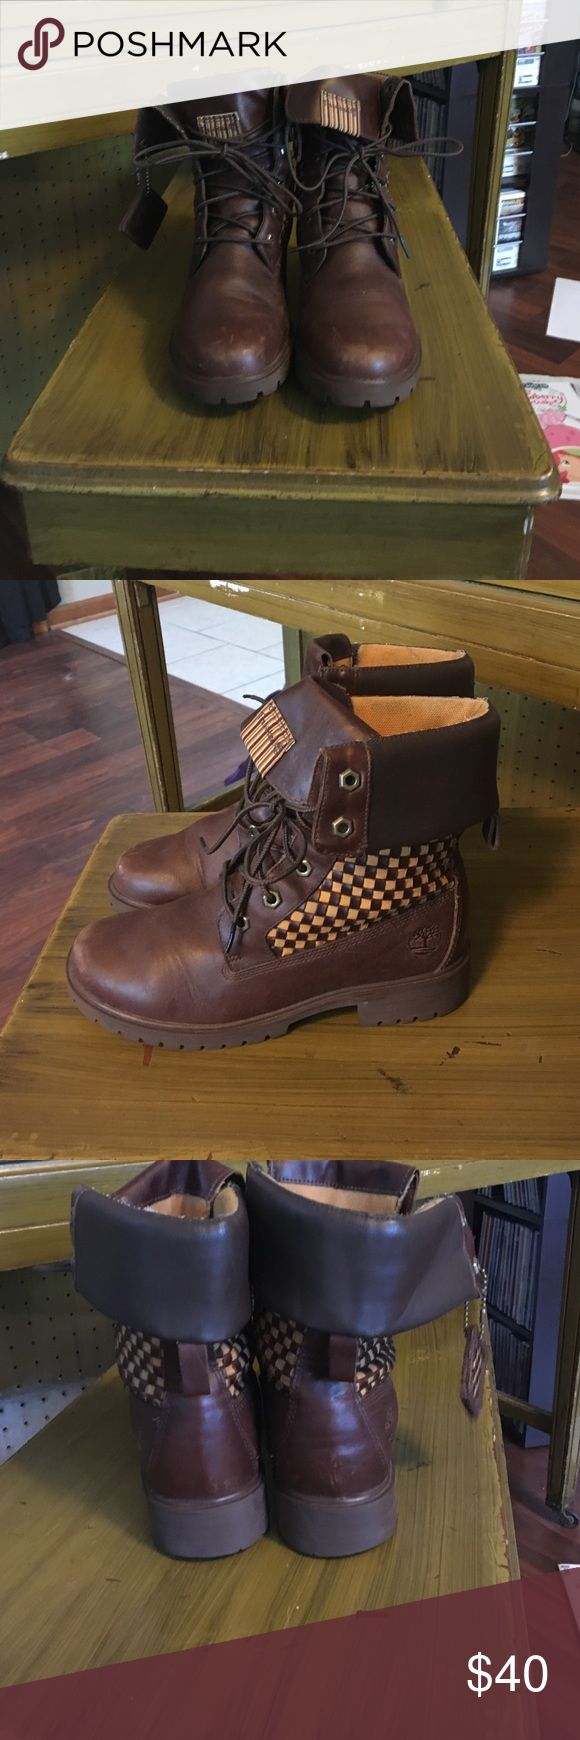 Timberland boots Brown Timberland boots with a checkered pattern Timberland Shoes Combat & Moto Boots